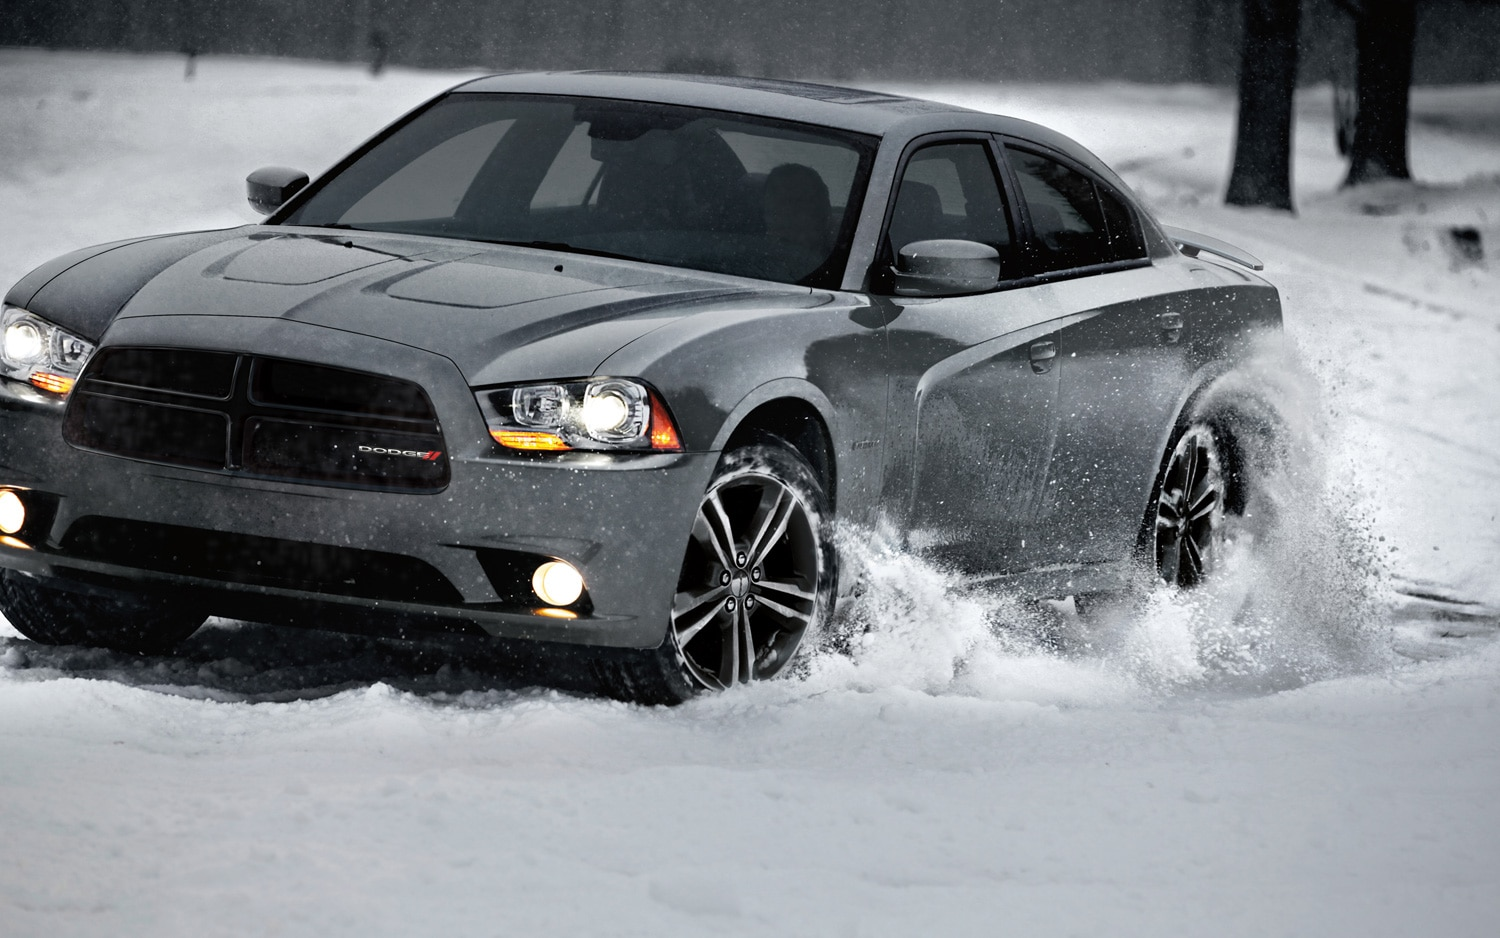 2013 Dodge Charger AWD Sport Front Three Quarter1